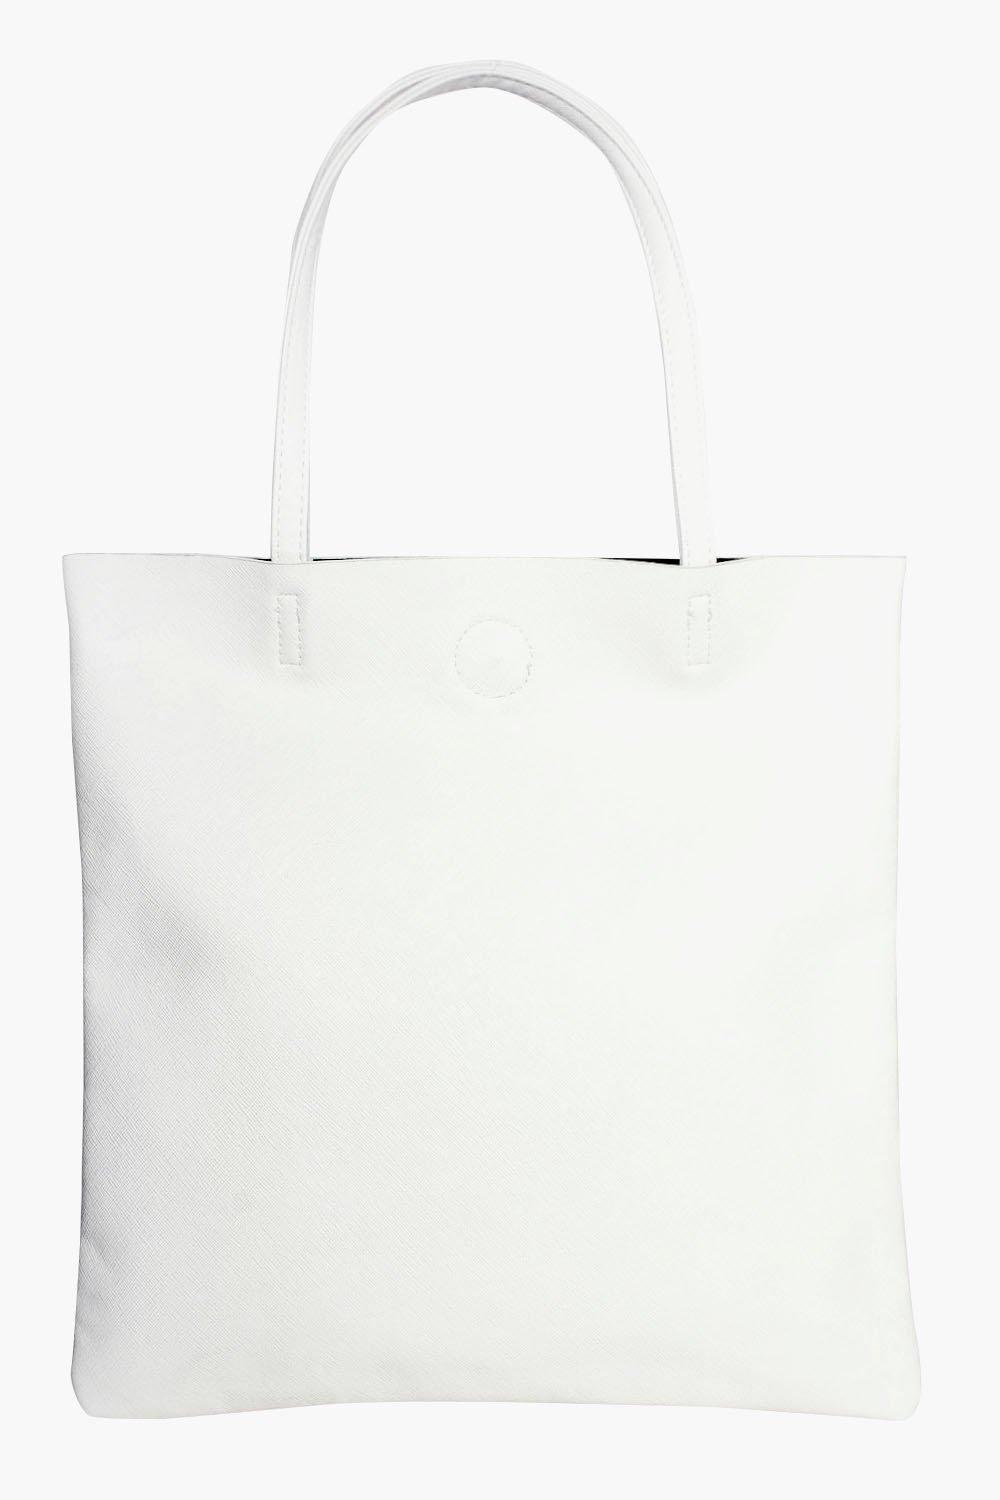 Crosshatch Shopper Bag - white - Hope Crosshatch S